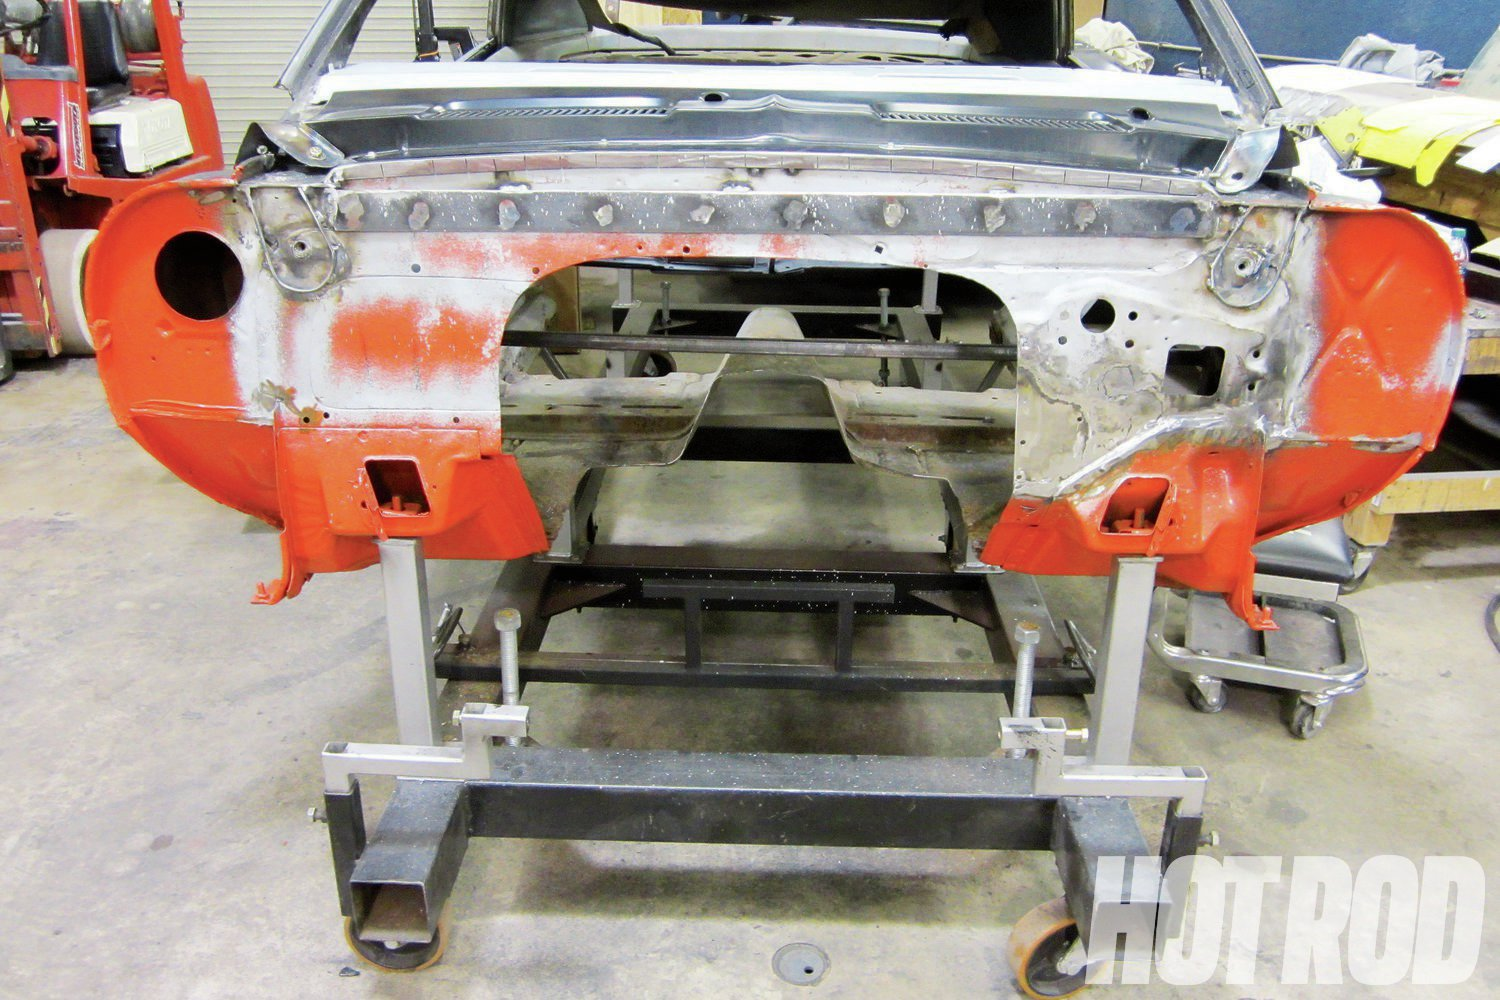 With the chassis dimensions recorded and sent to Art Morrison, attention turned to the thrashed shell of the Camaro. Rust was repaired where it was necessary, and Auto Metal Direct was used for replacement sheetmetal.